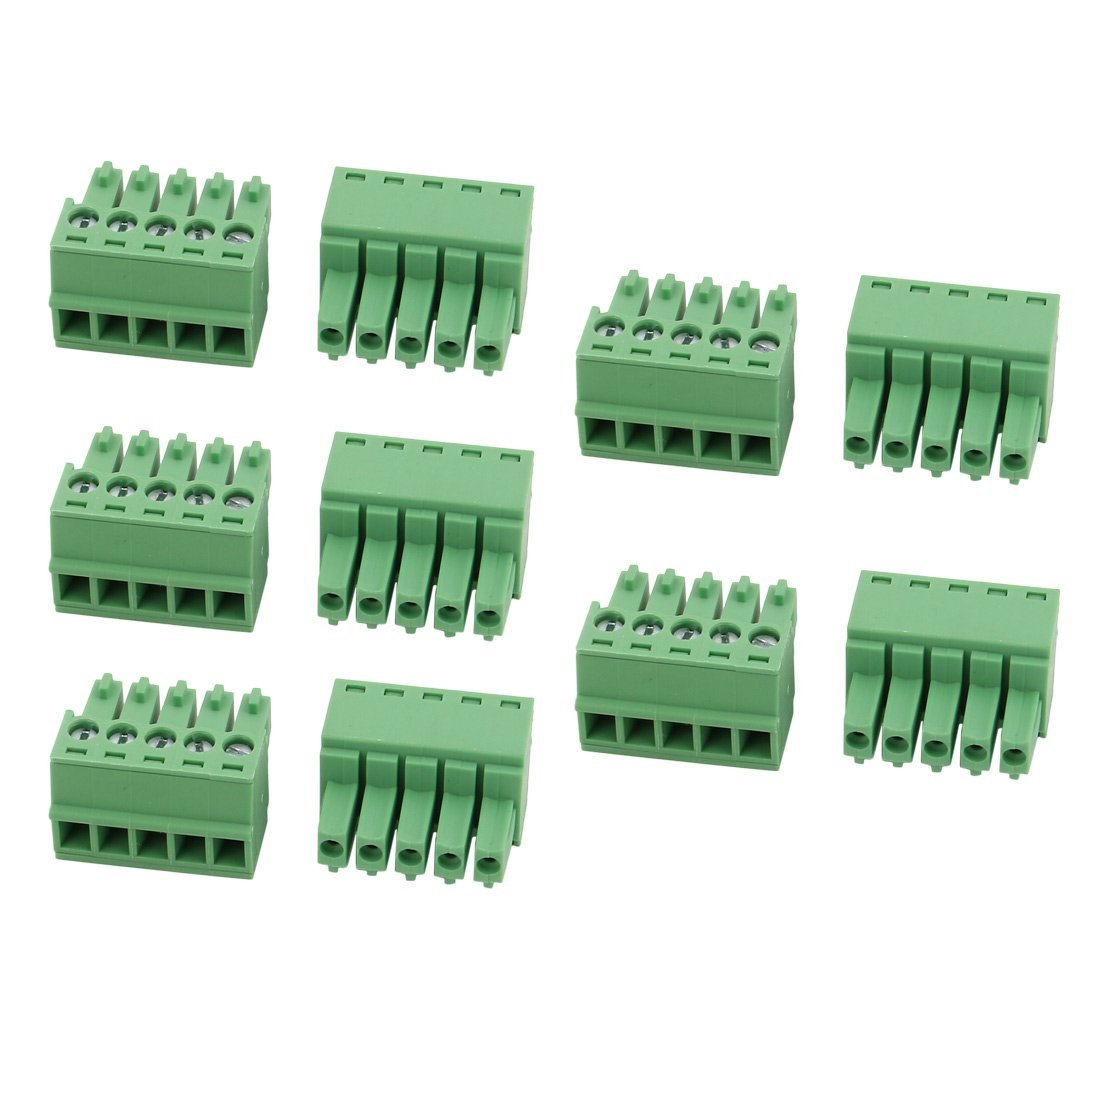 uxcell 10Pcs LC1 AC300V 8A 3.5mm Pitch 5P PCB Terminal Block Wire Connection